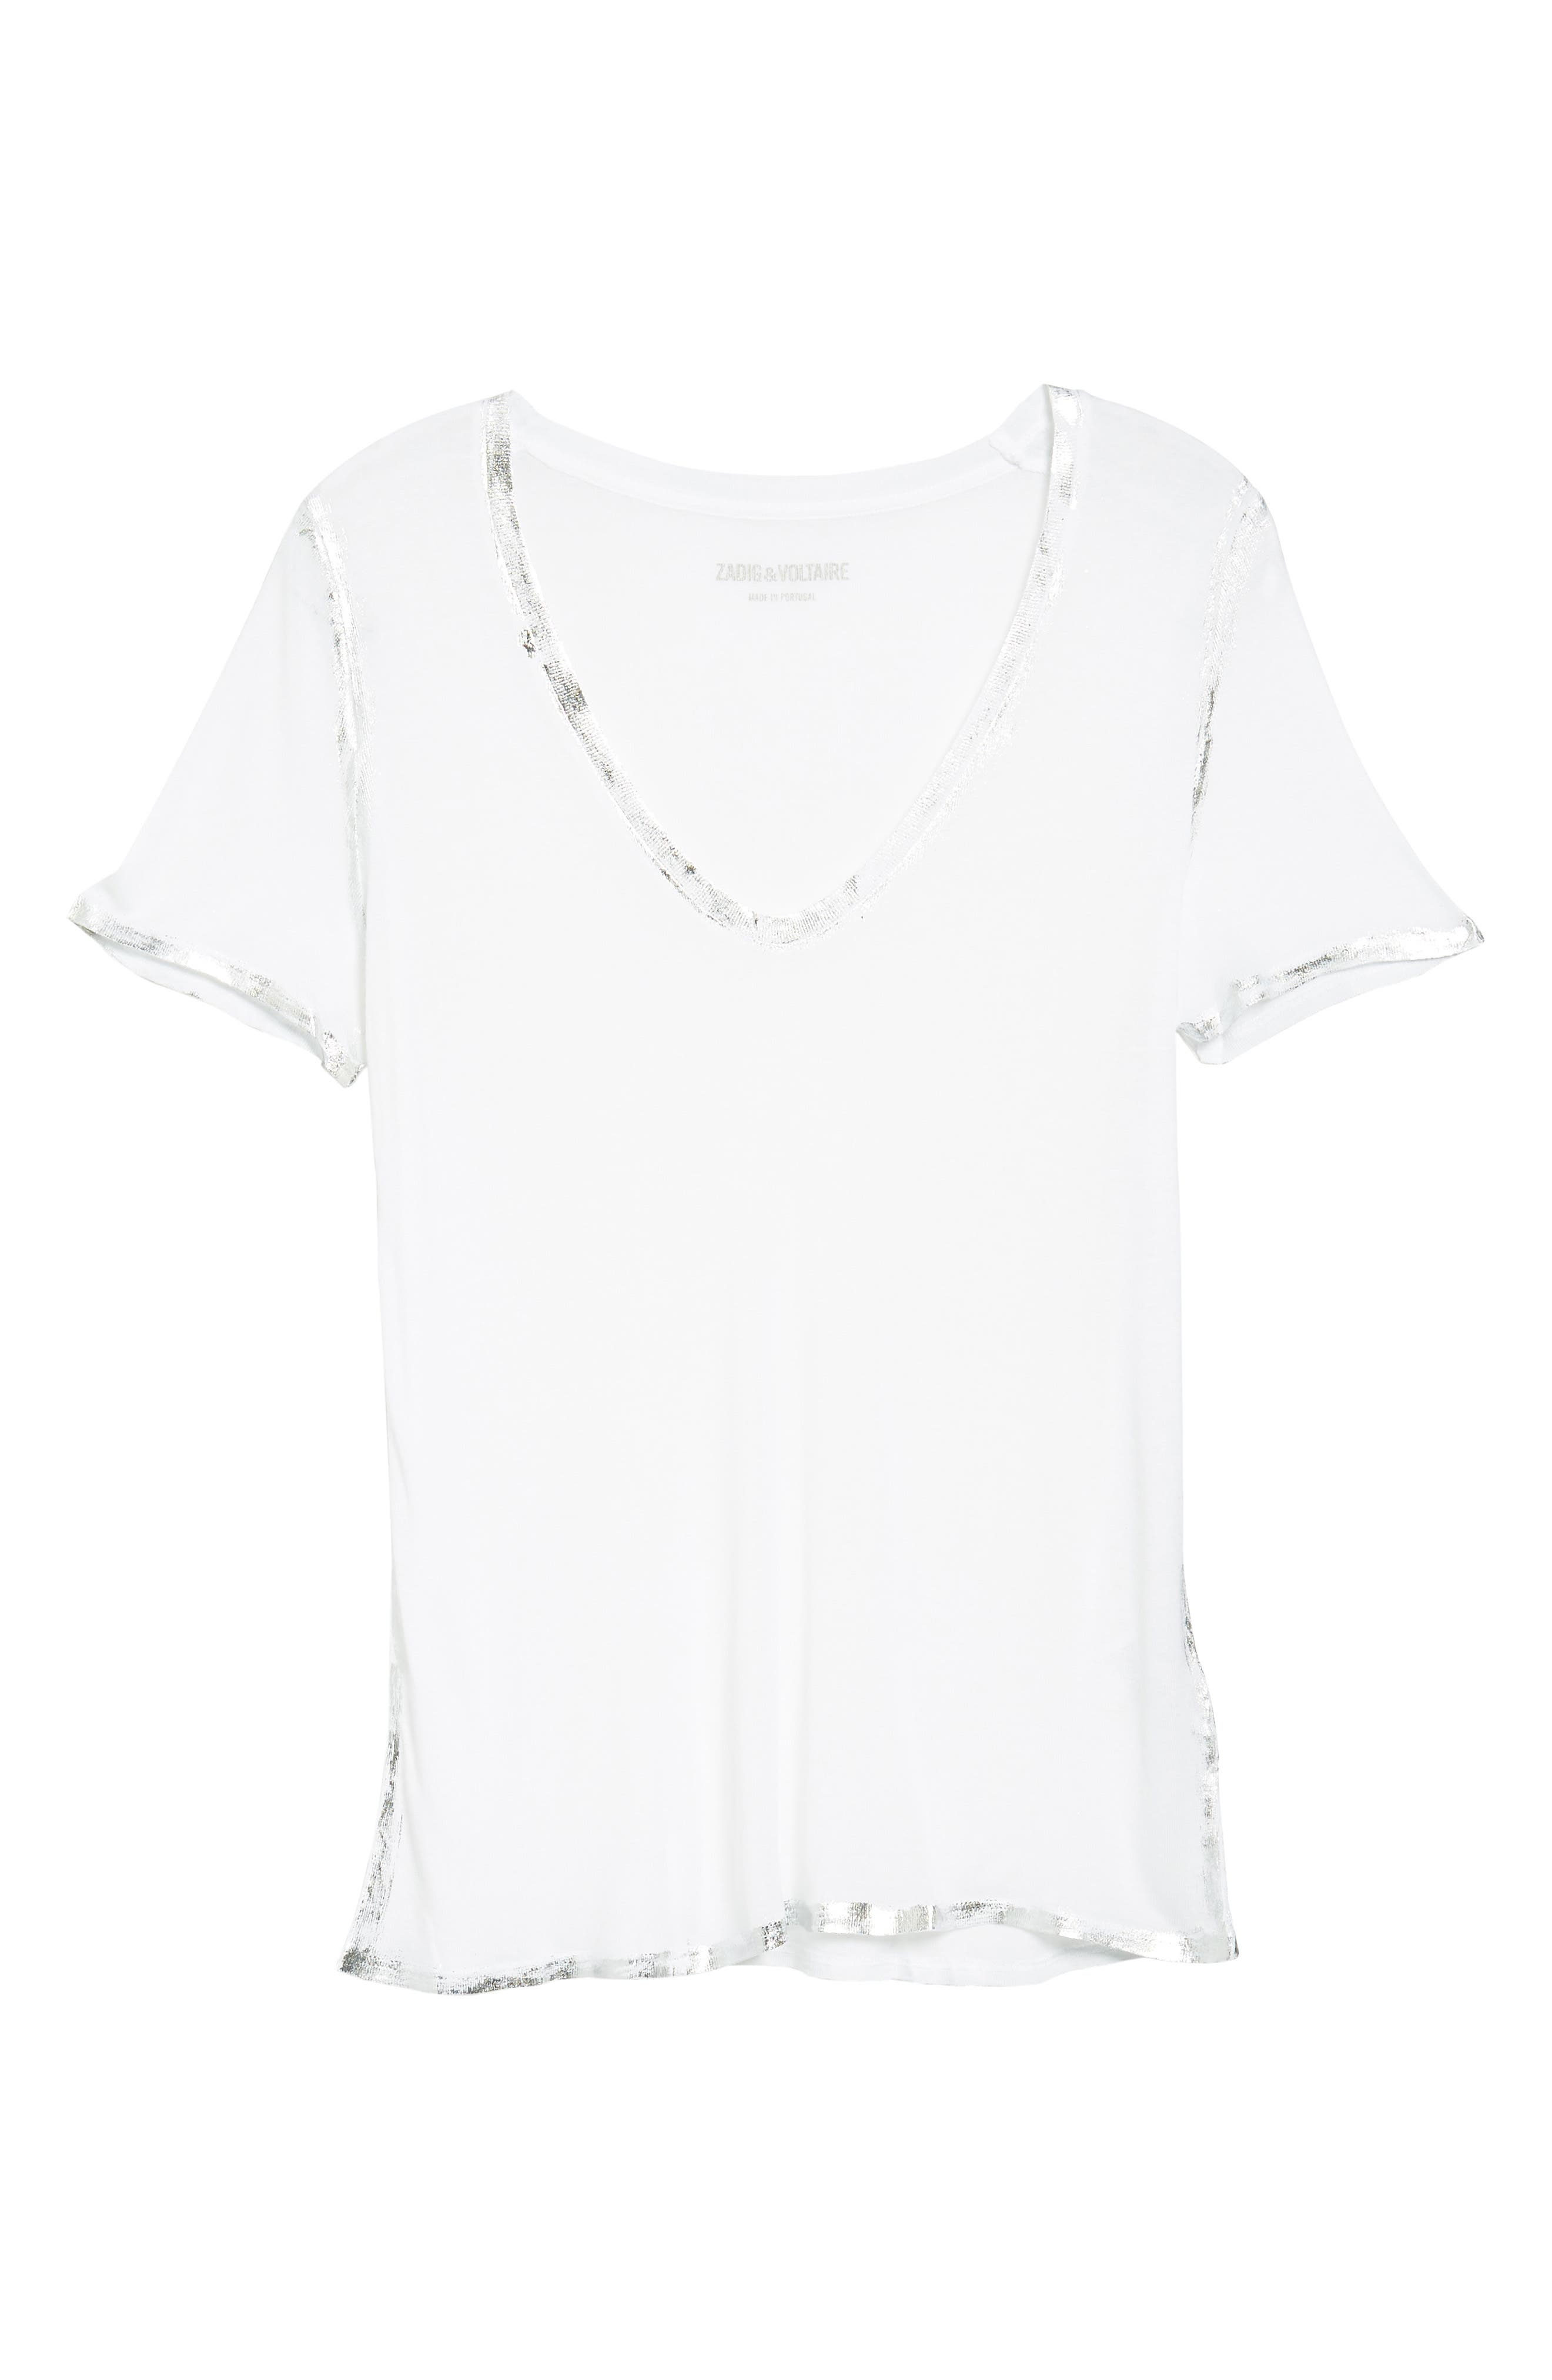 ZADIG & VOLTAIRE 'Tino' Foil Accent Tee, Main, color, 116